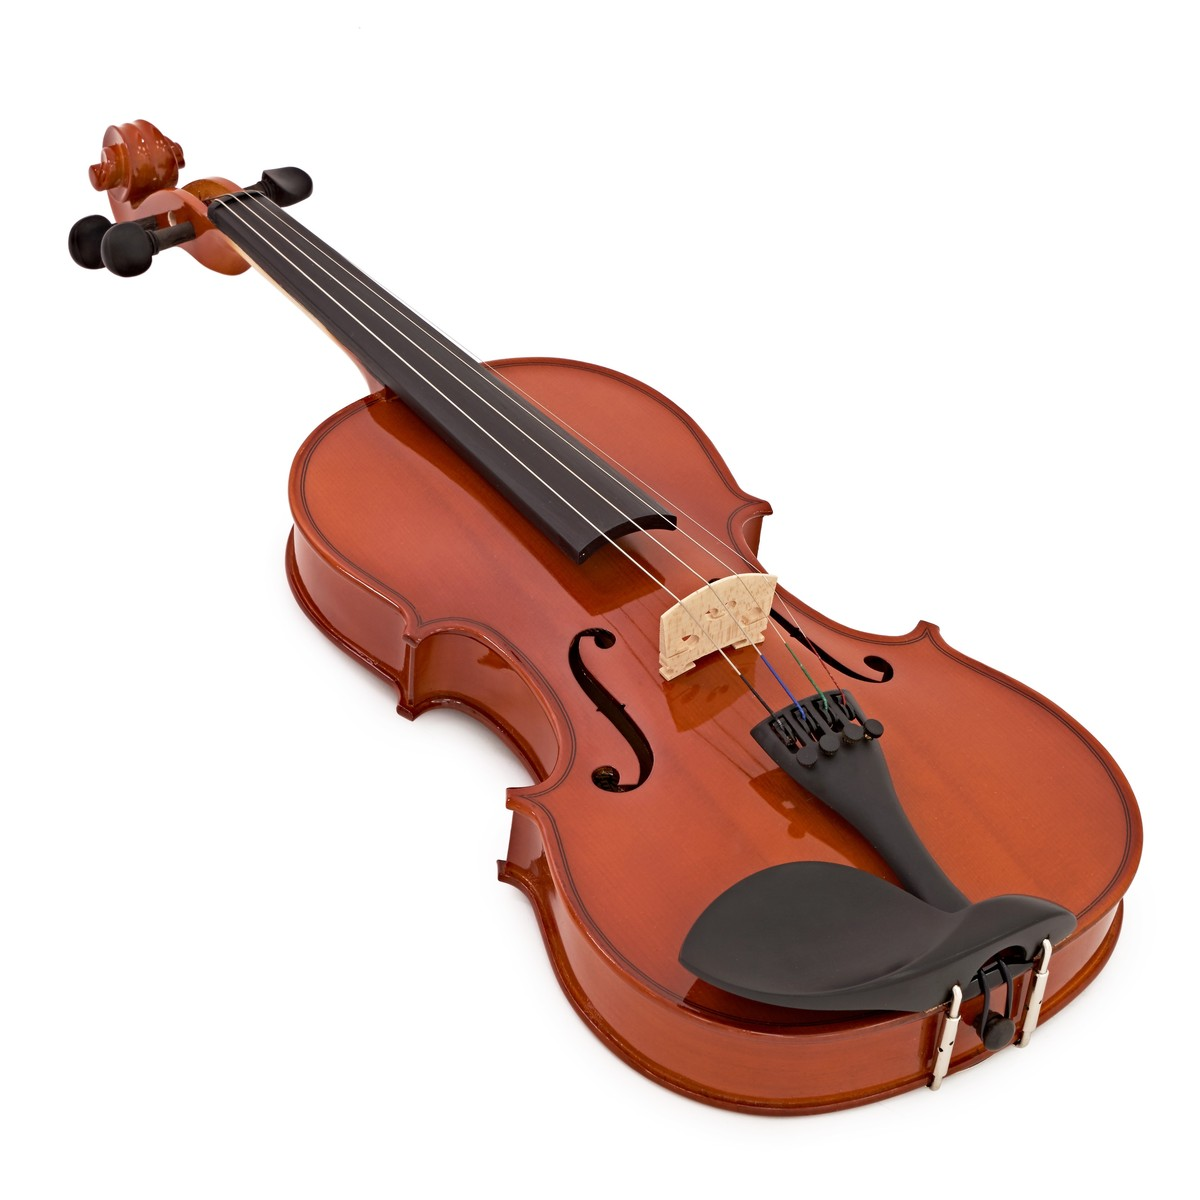 Student Full Size 4/4 Violin by Gear4music at Gear4music.com